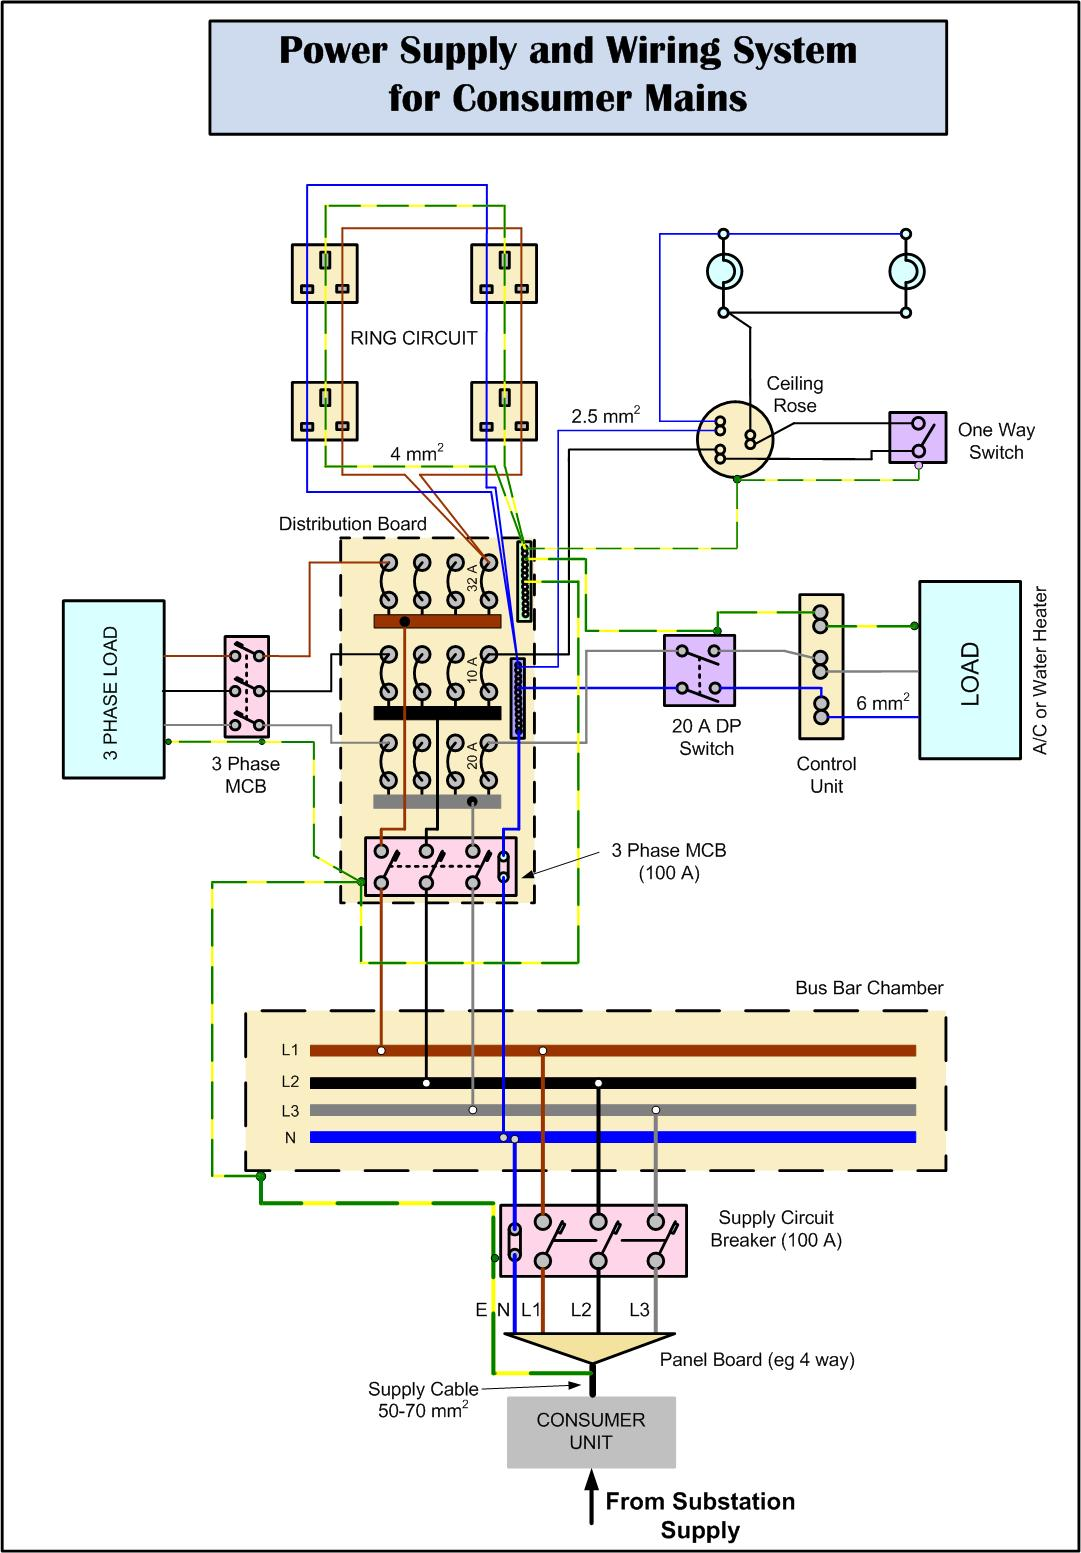 Consumer_Mains_Wiring file consumer mains wiring jpg wikimedia commons main wiring diagram 2015 ford f150 at mifinder.co